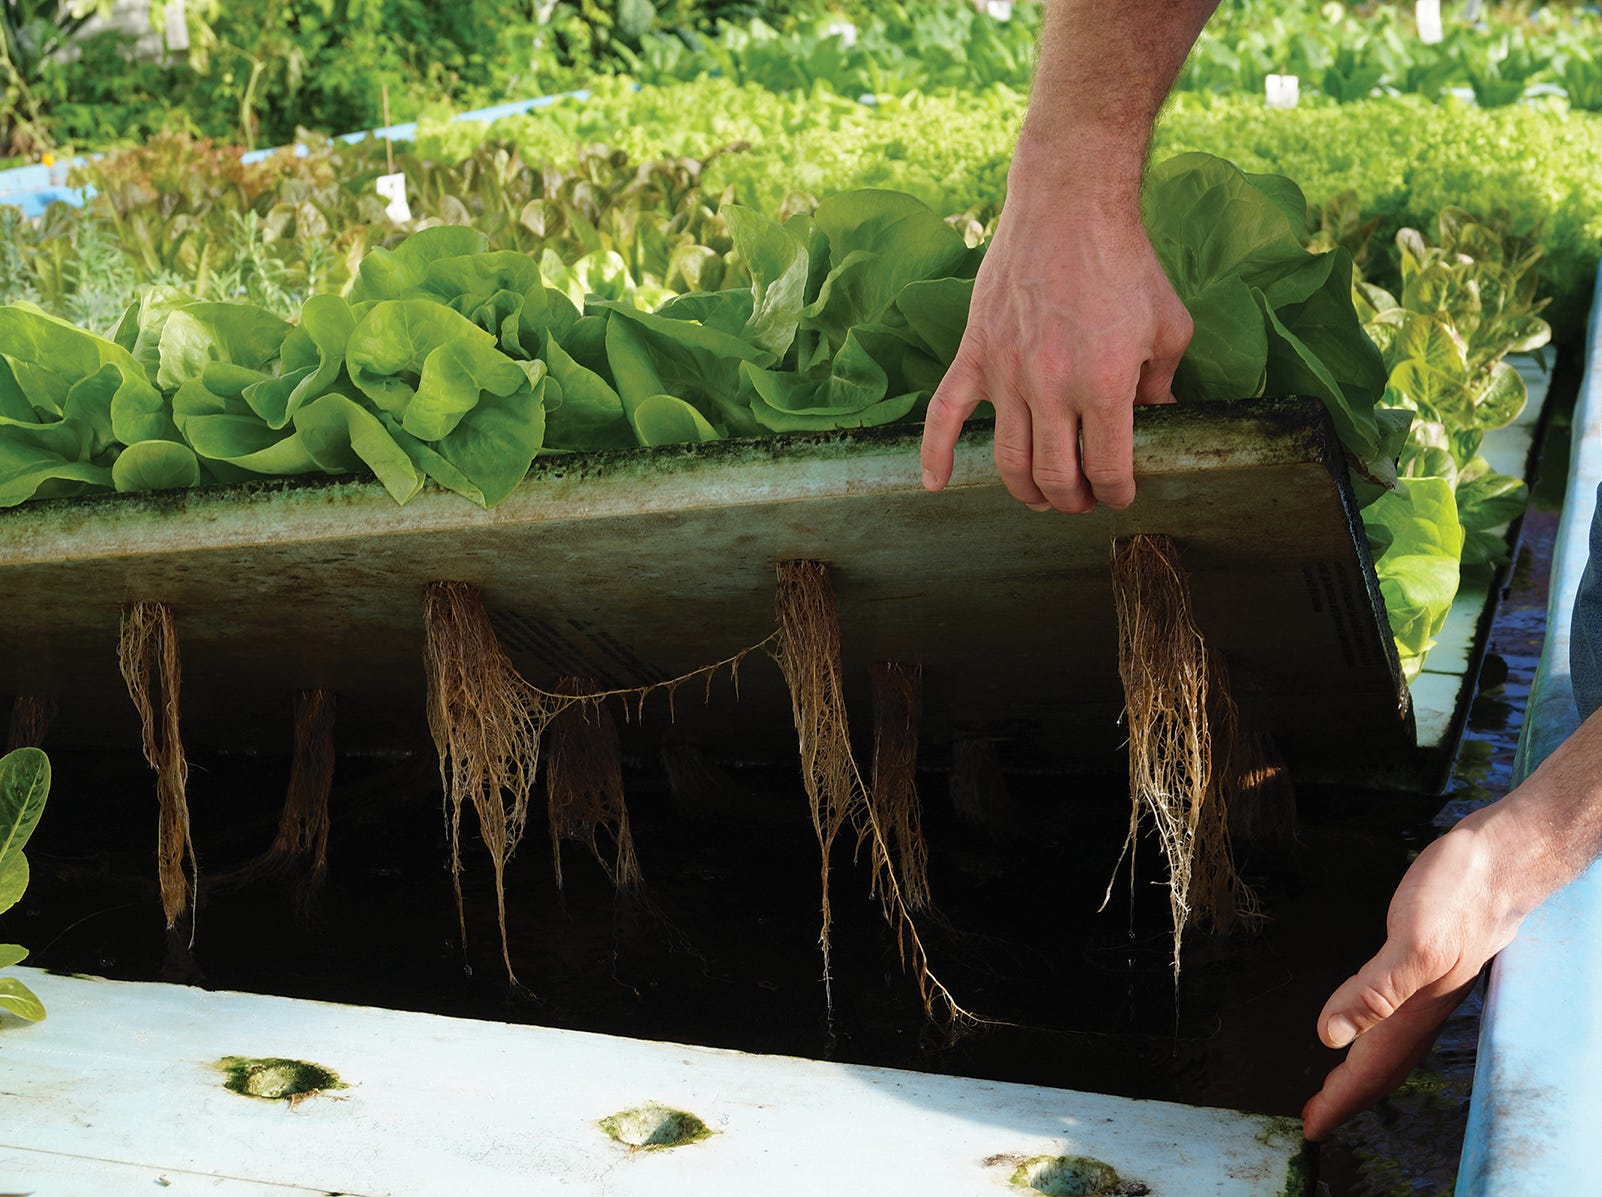 The consistent growing conditions that water provides, gives Lake Orchard Farm's produce intense flavor year-round.